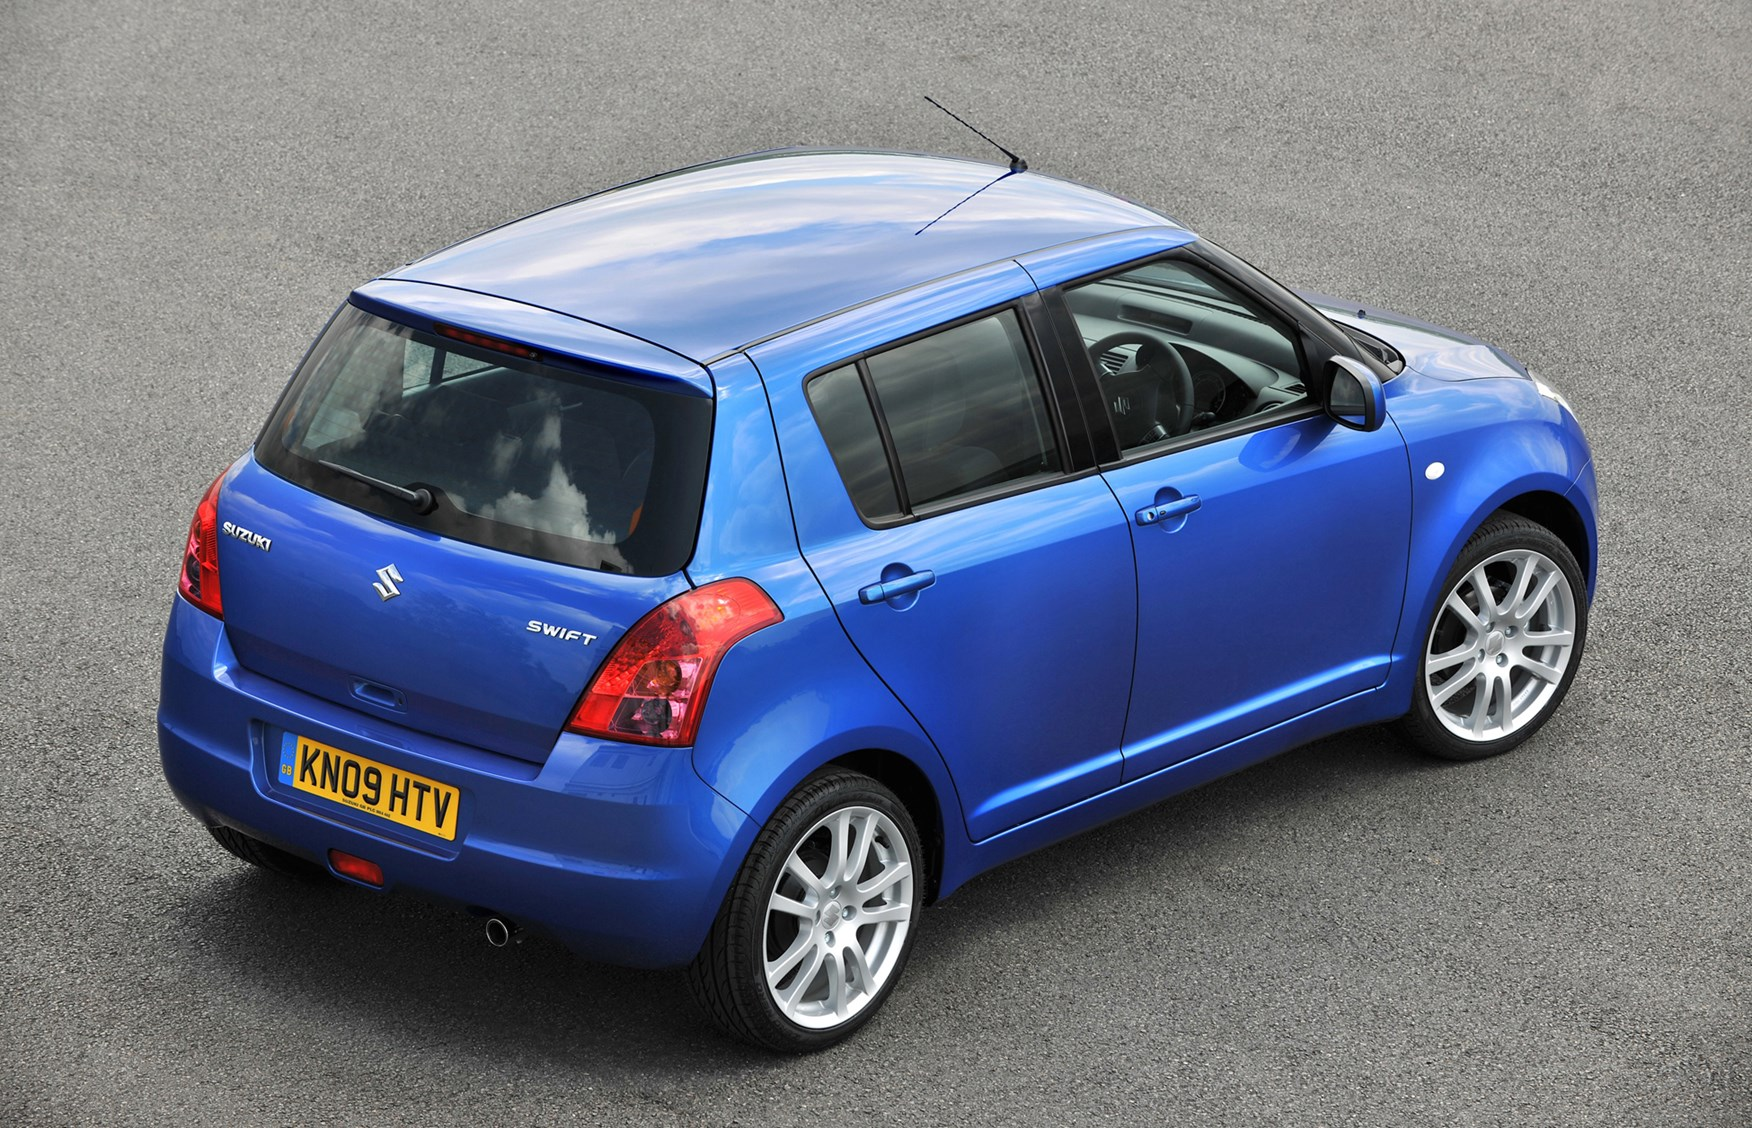 Suzuki Swift Cars For Sale Uk